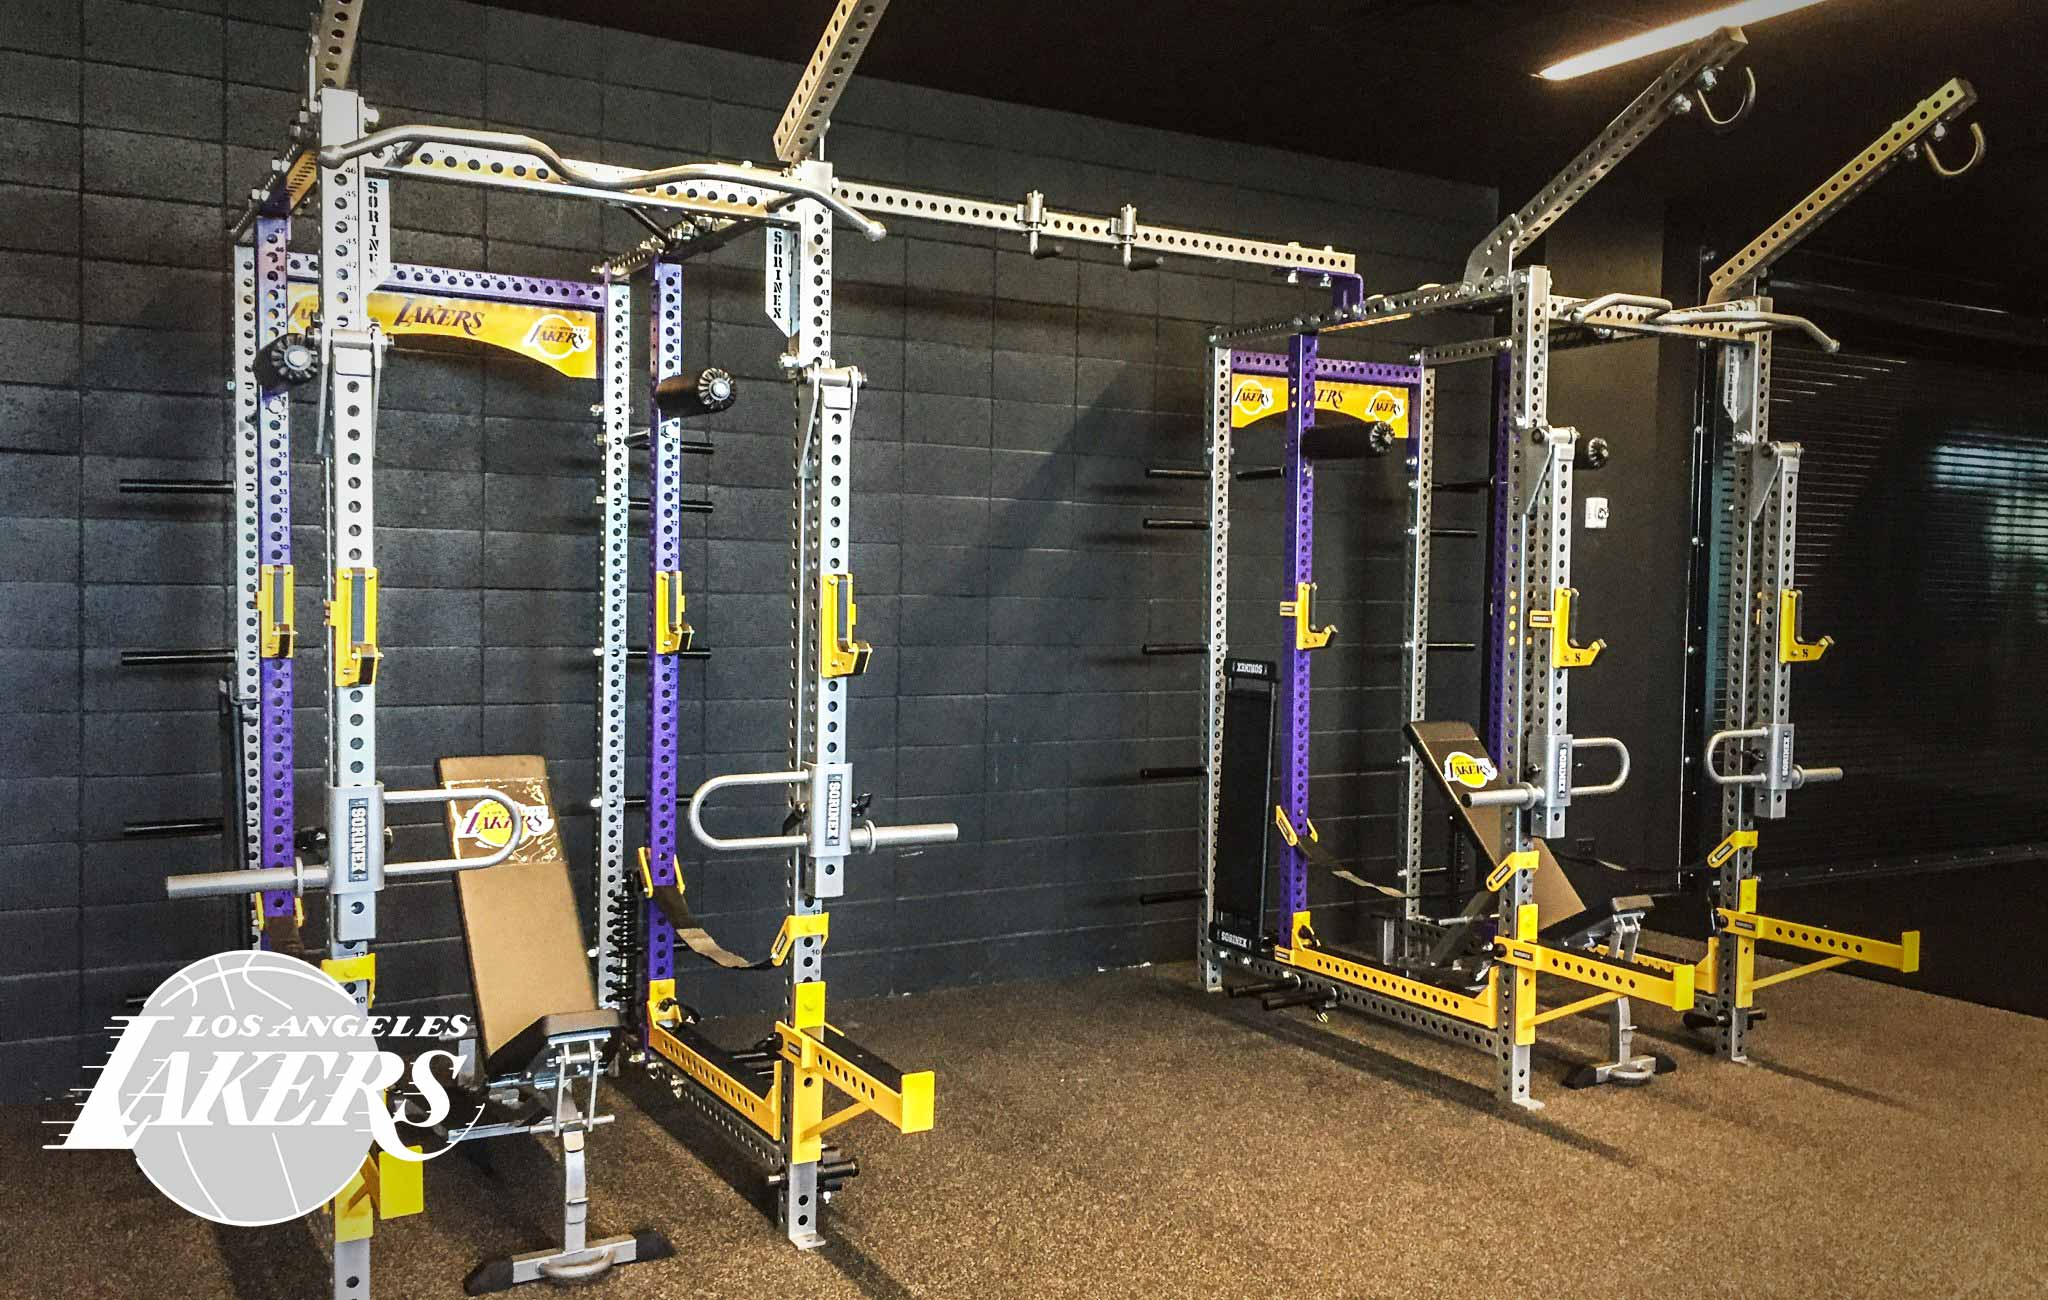 Los Angeles Lakers Sorinex strength and conditioning facility